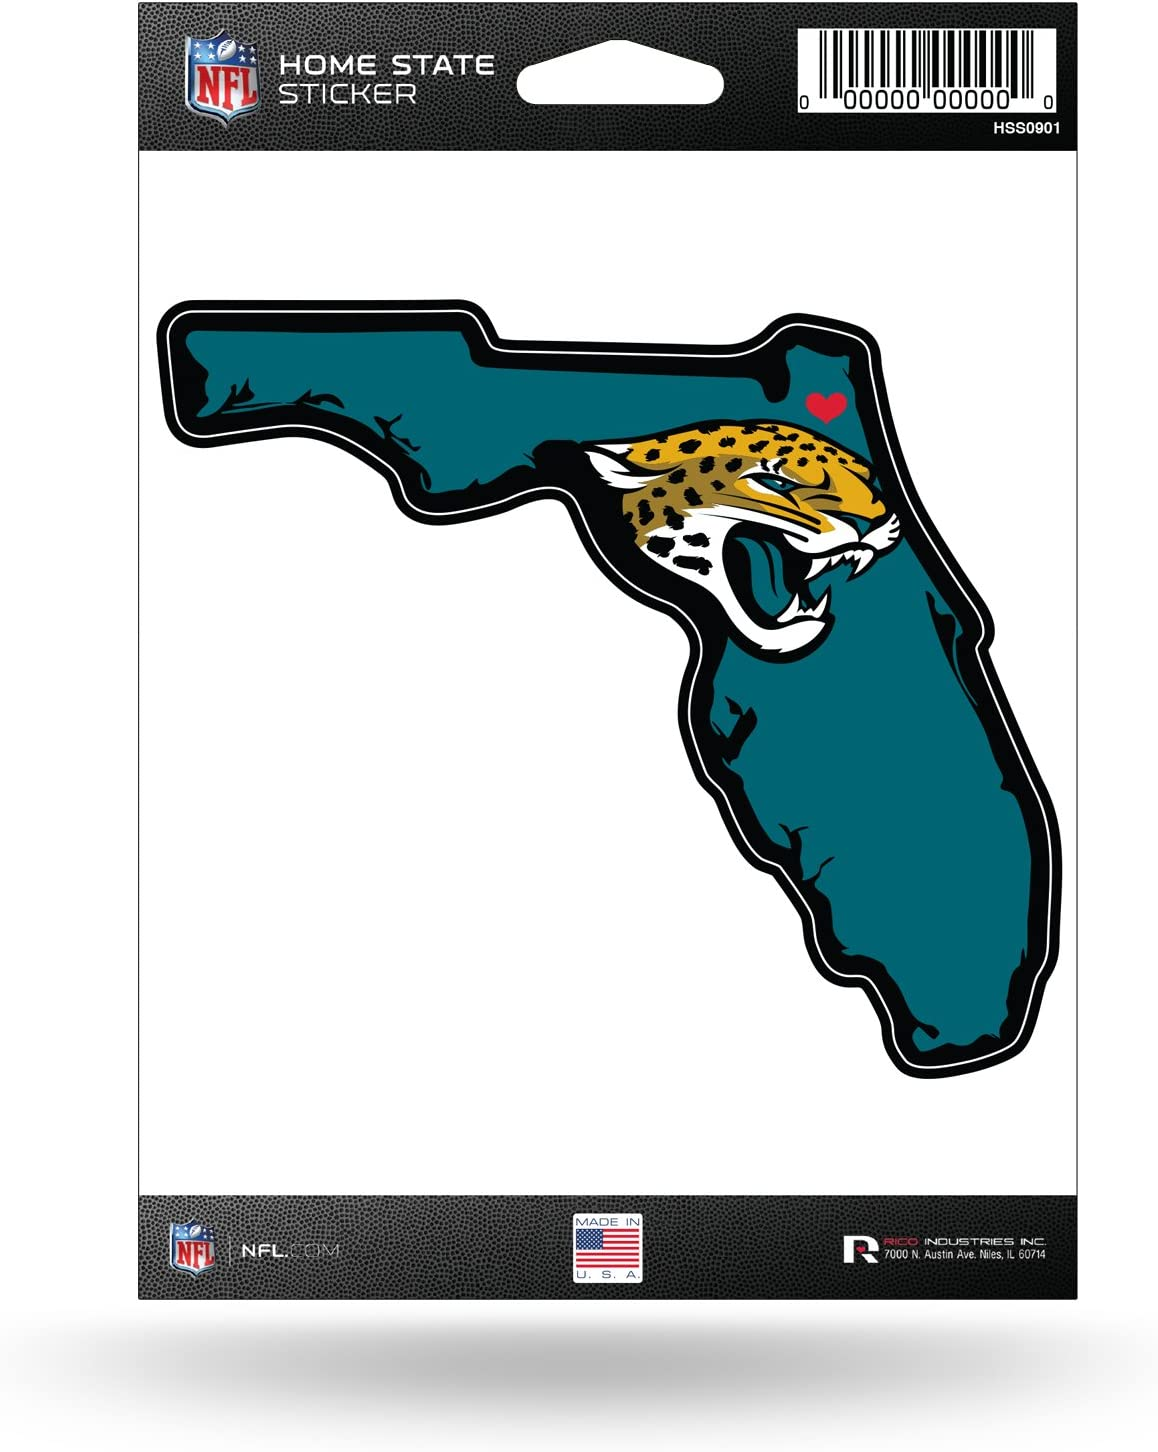 NFL Rico Industries Home State Sticker, Jacksonville Jaguars